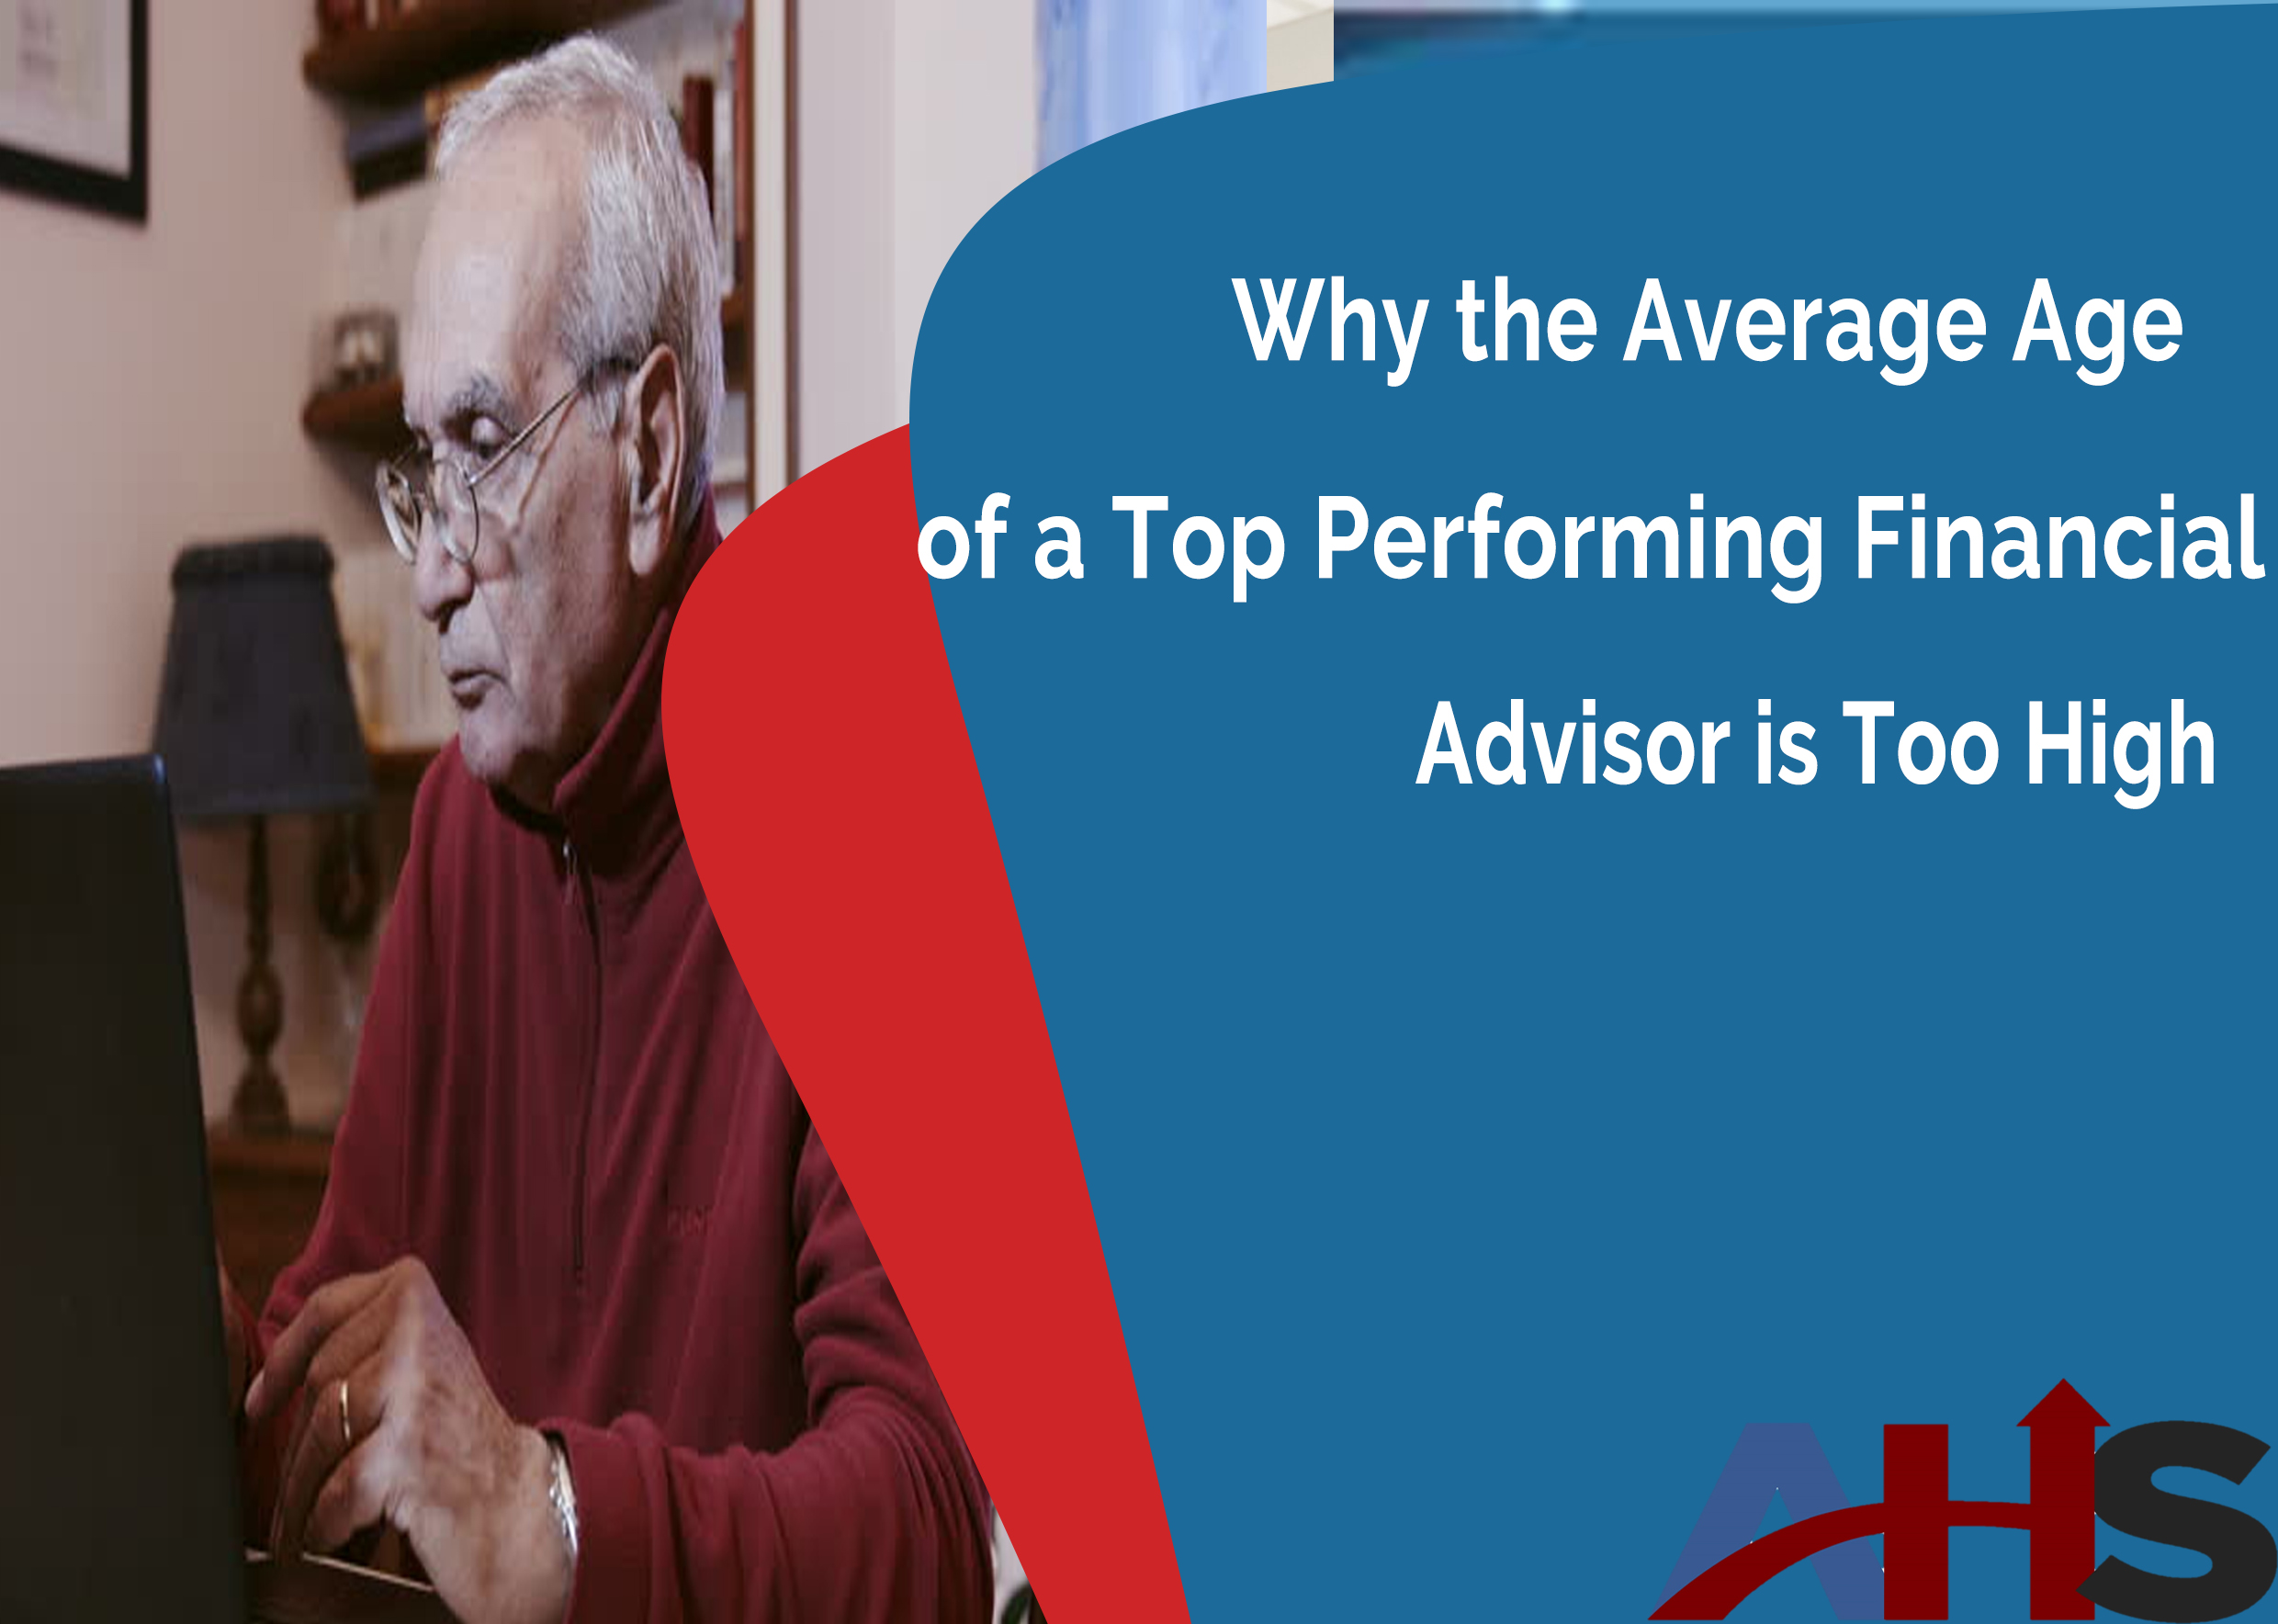 Why the Average Age of a Top Performing Financial Advisor is Too High